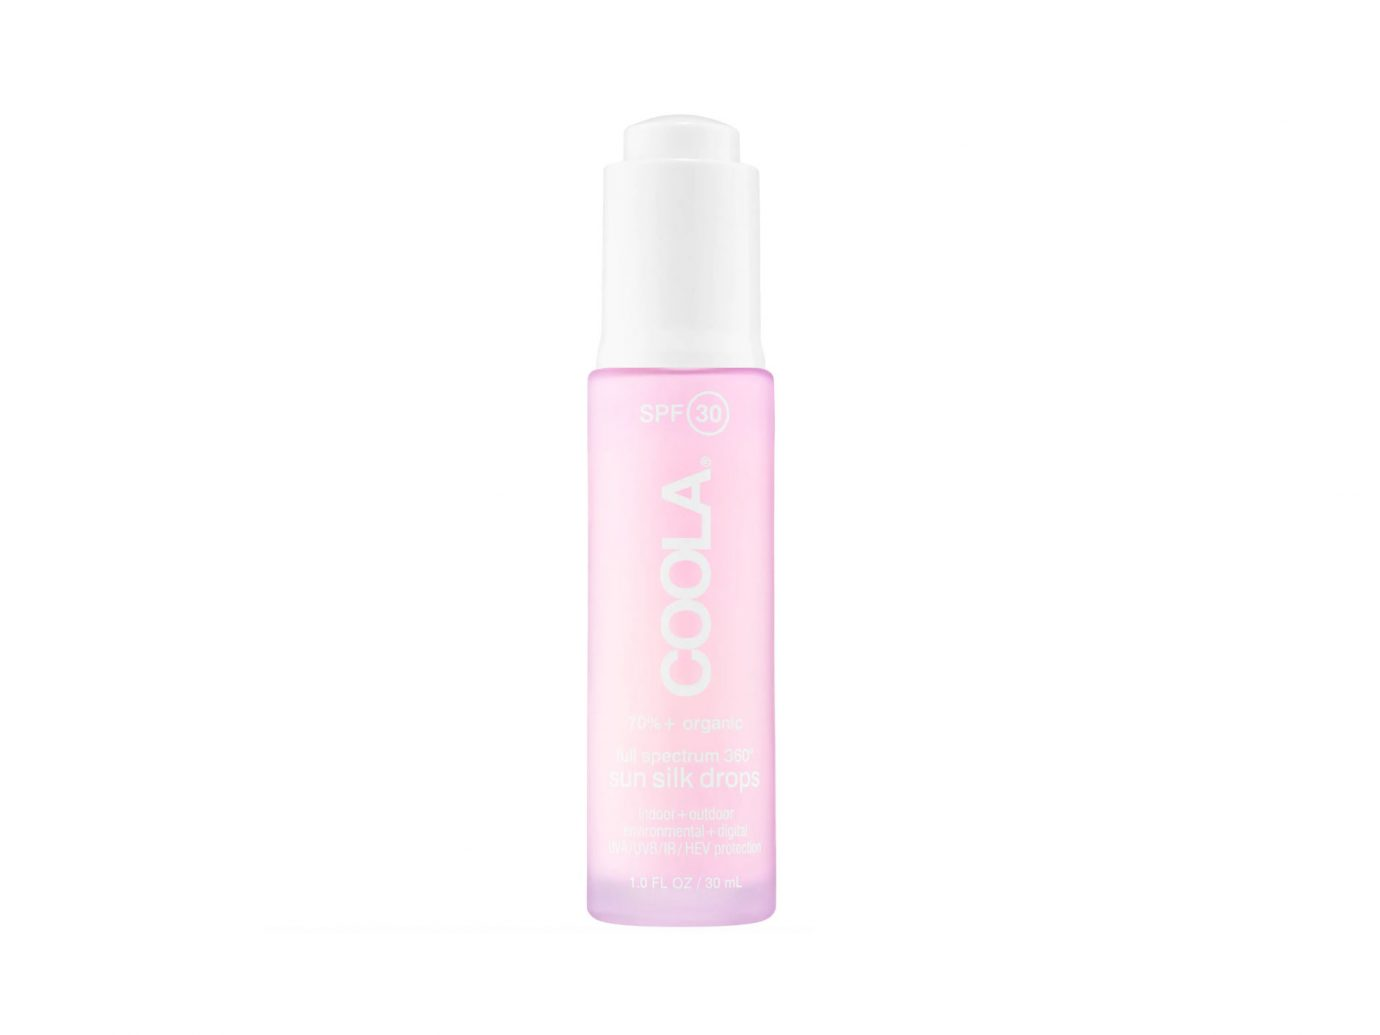 COOLA Full Spectrum 360° Sun Silk Drops SPF 30